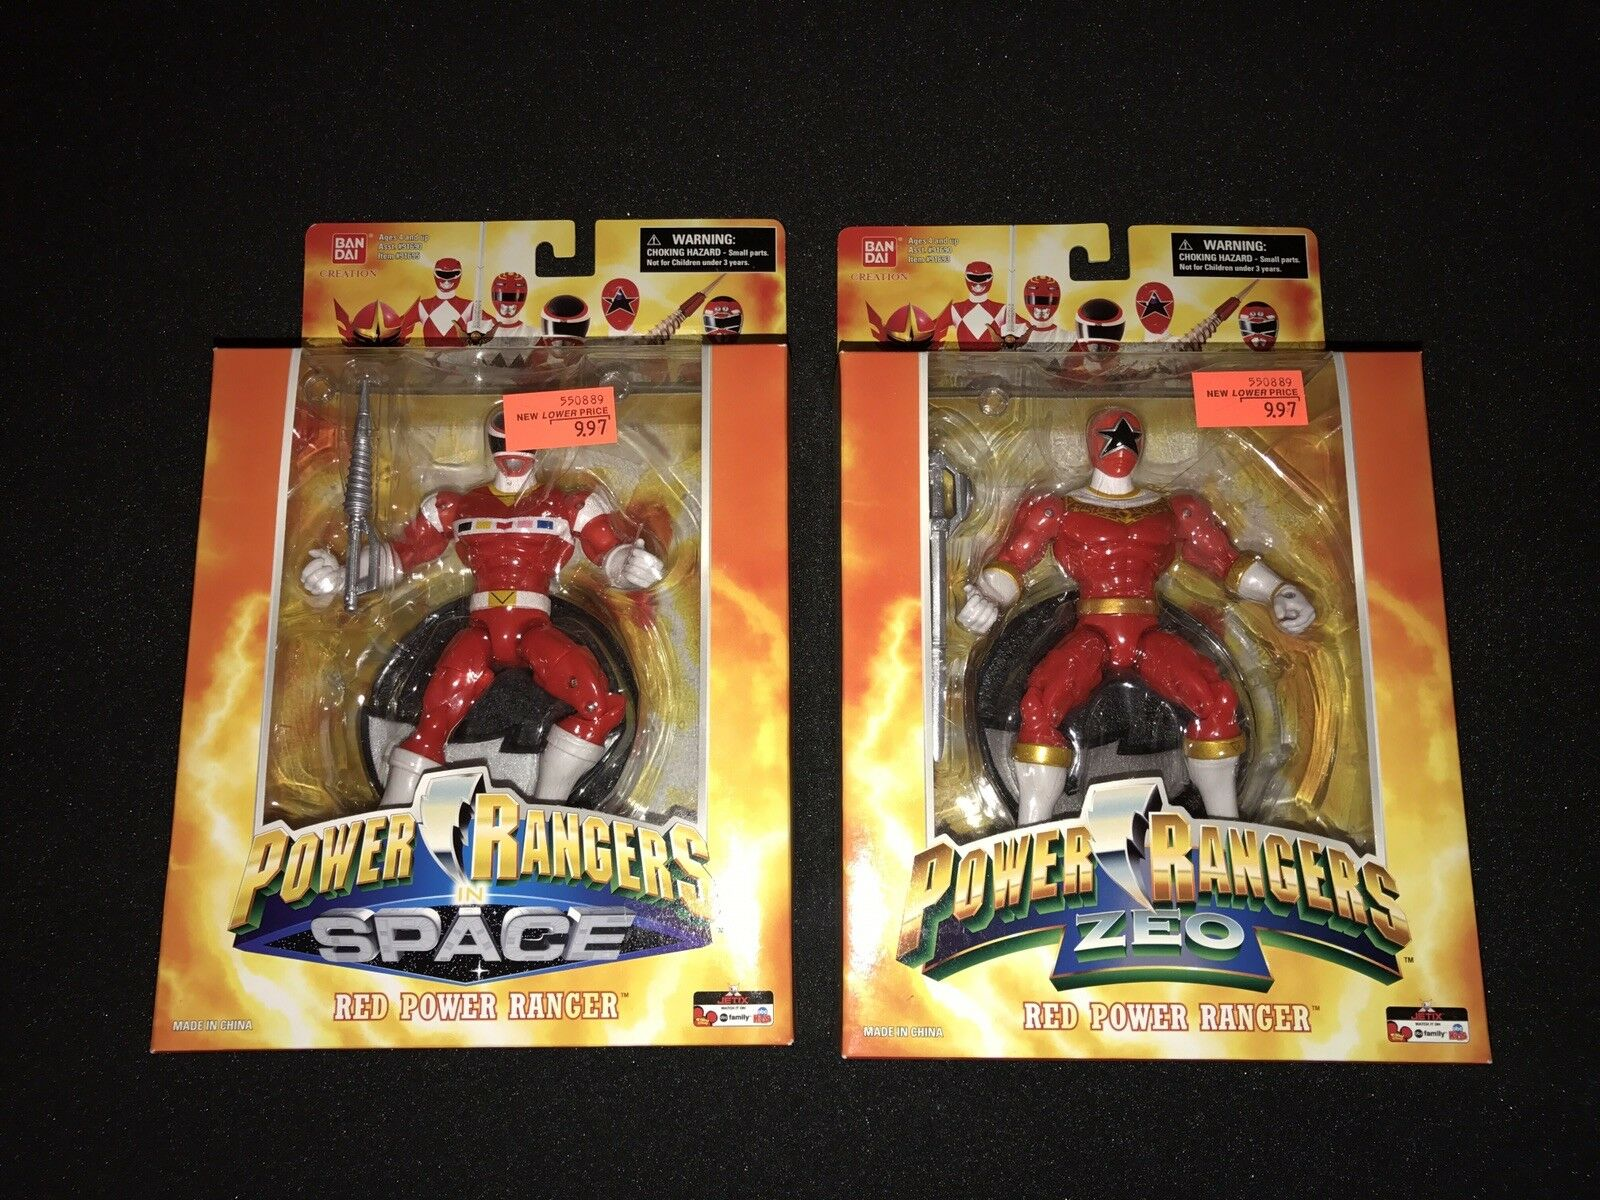 Power Rangers 15th Anniversary rot Rangers In space & ZEO 6.5  SET OF 2 NEW